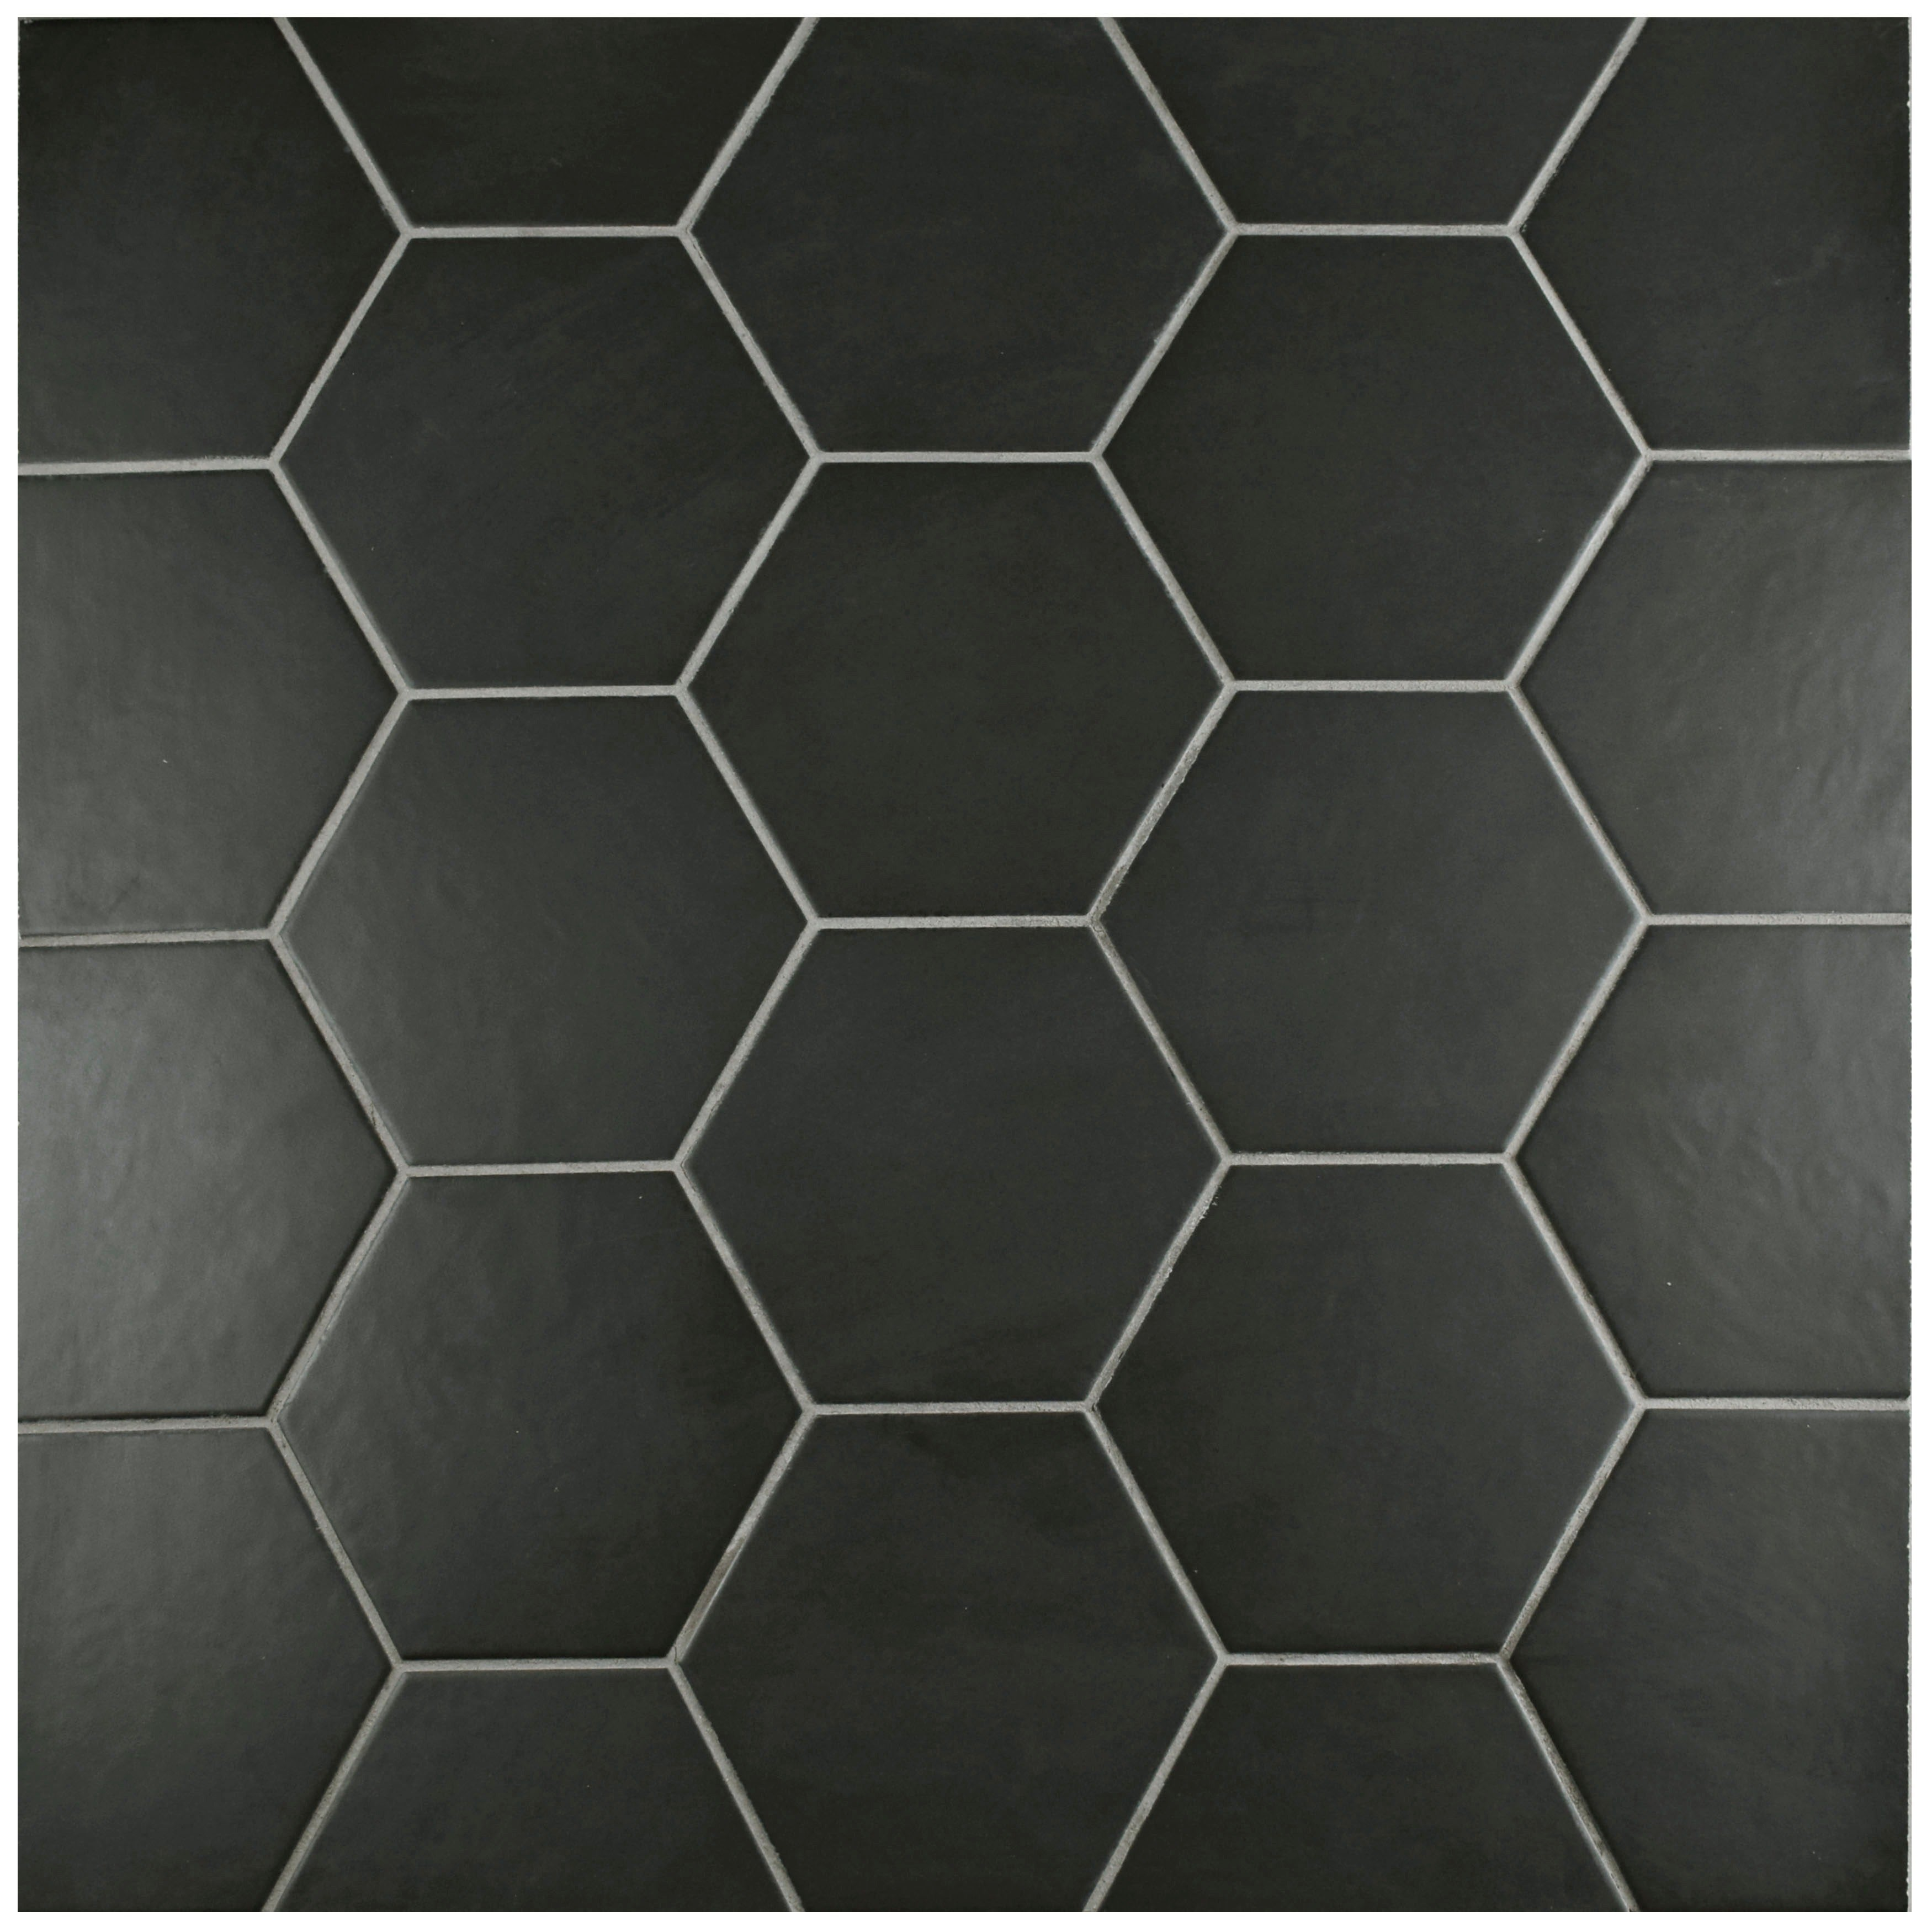 Somertile 7x8 inch hextile matte black porcelain floor and wall somertile 7x8 inch hextile matte black porcelain floor and wall tile case of 14 free shipping on orders over 45 overstock 15742538 dailygadgetfo Choice Image